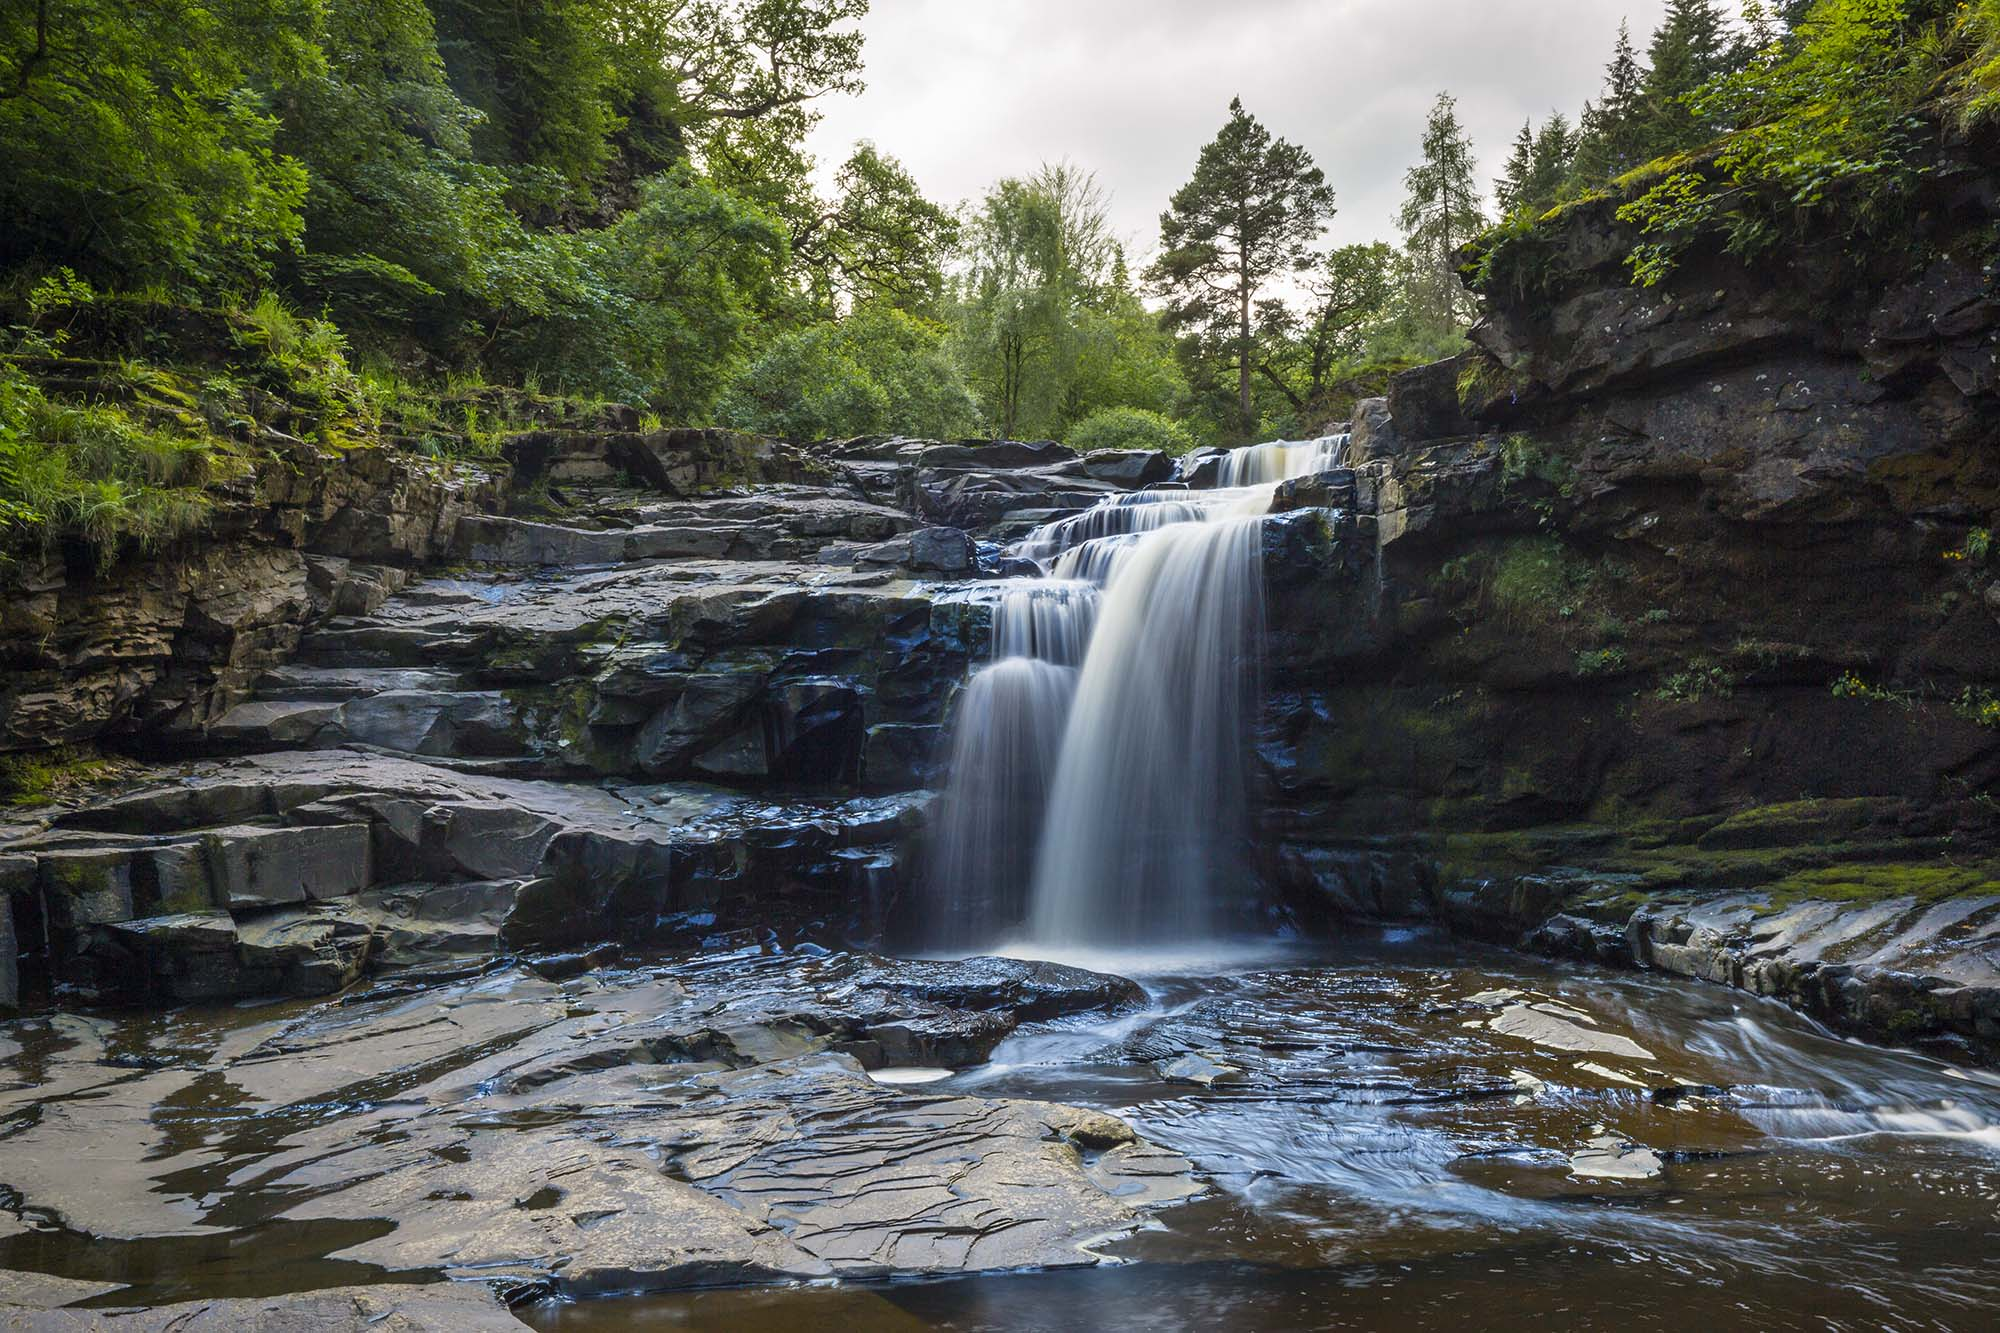 Waterfall at the Falls of Clyde.